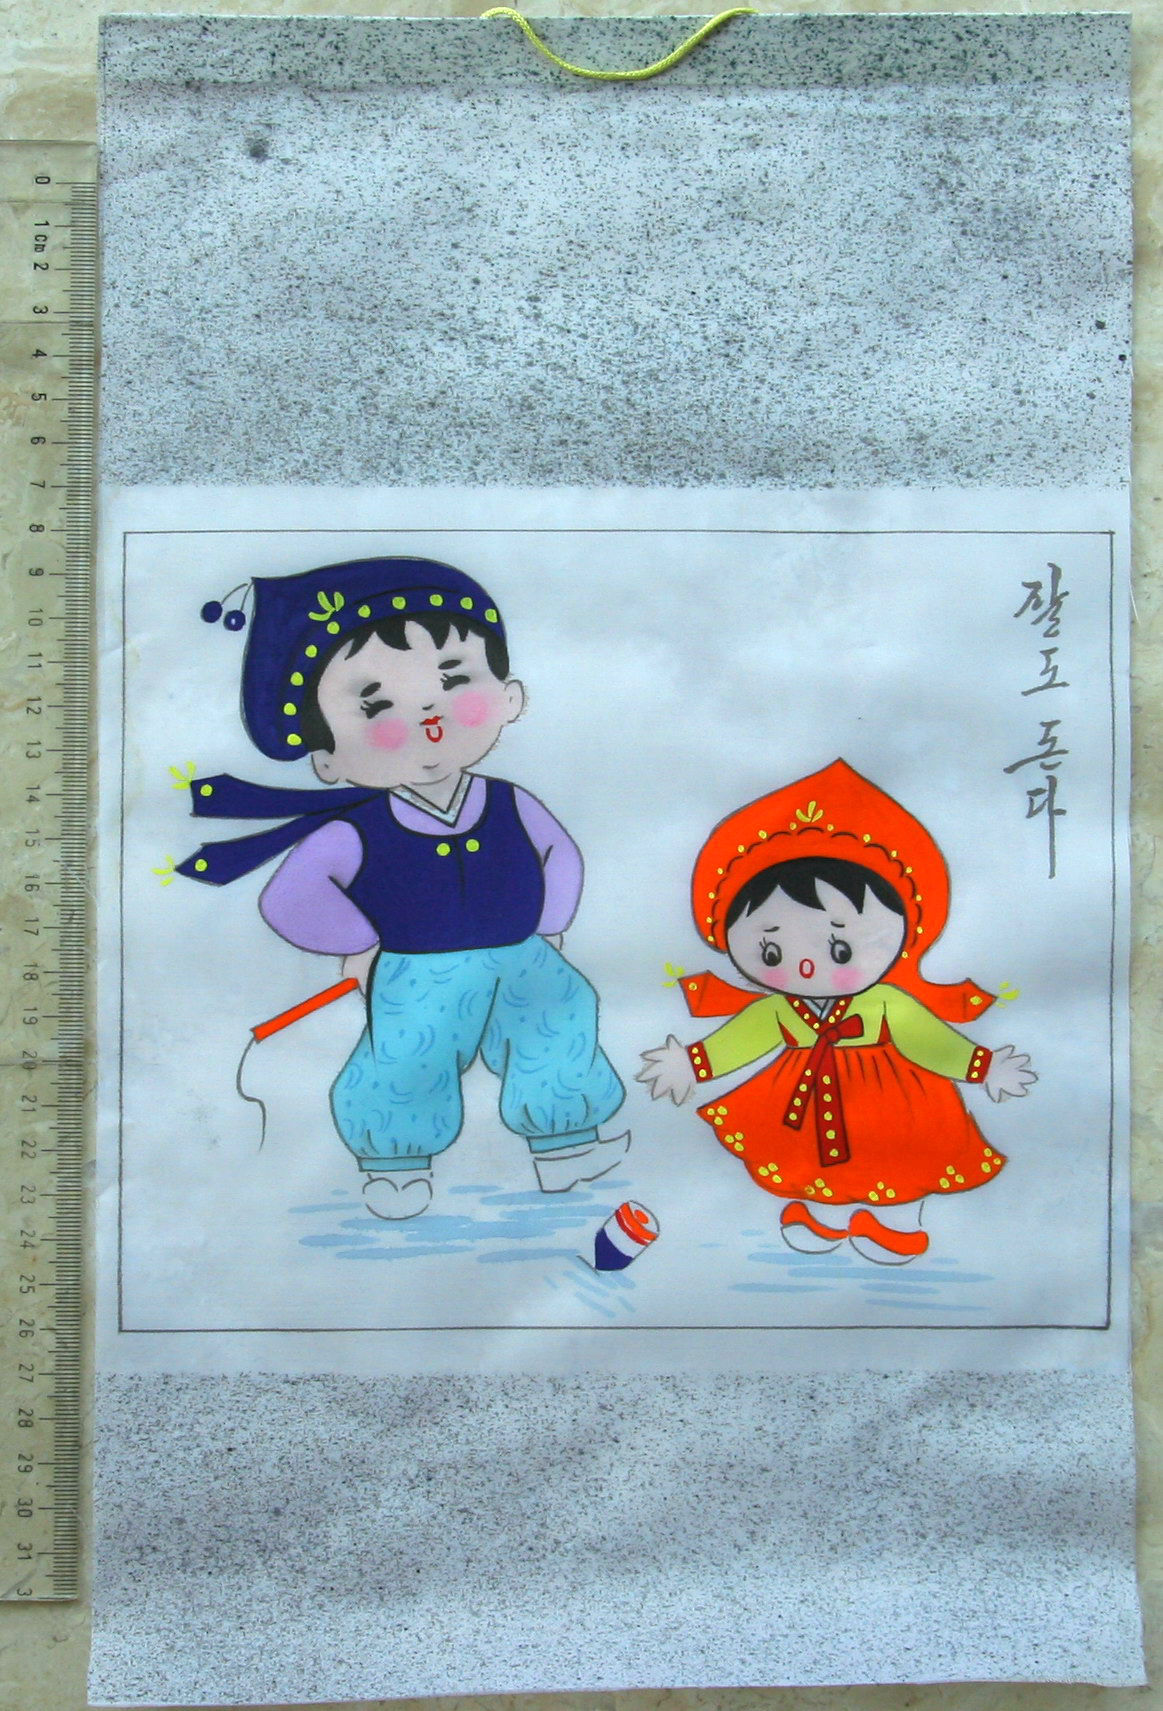 L8501, Korea Traditional Handmade Painting, Boy & Girl